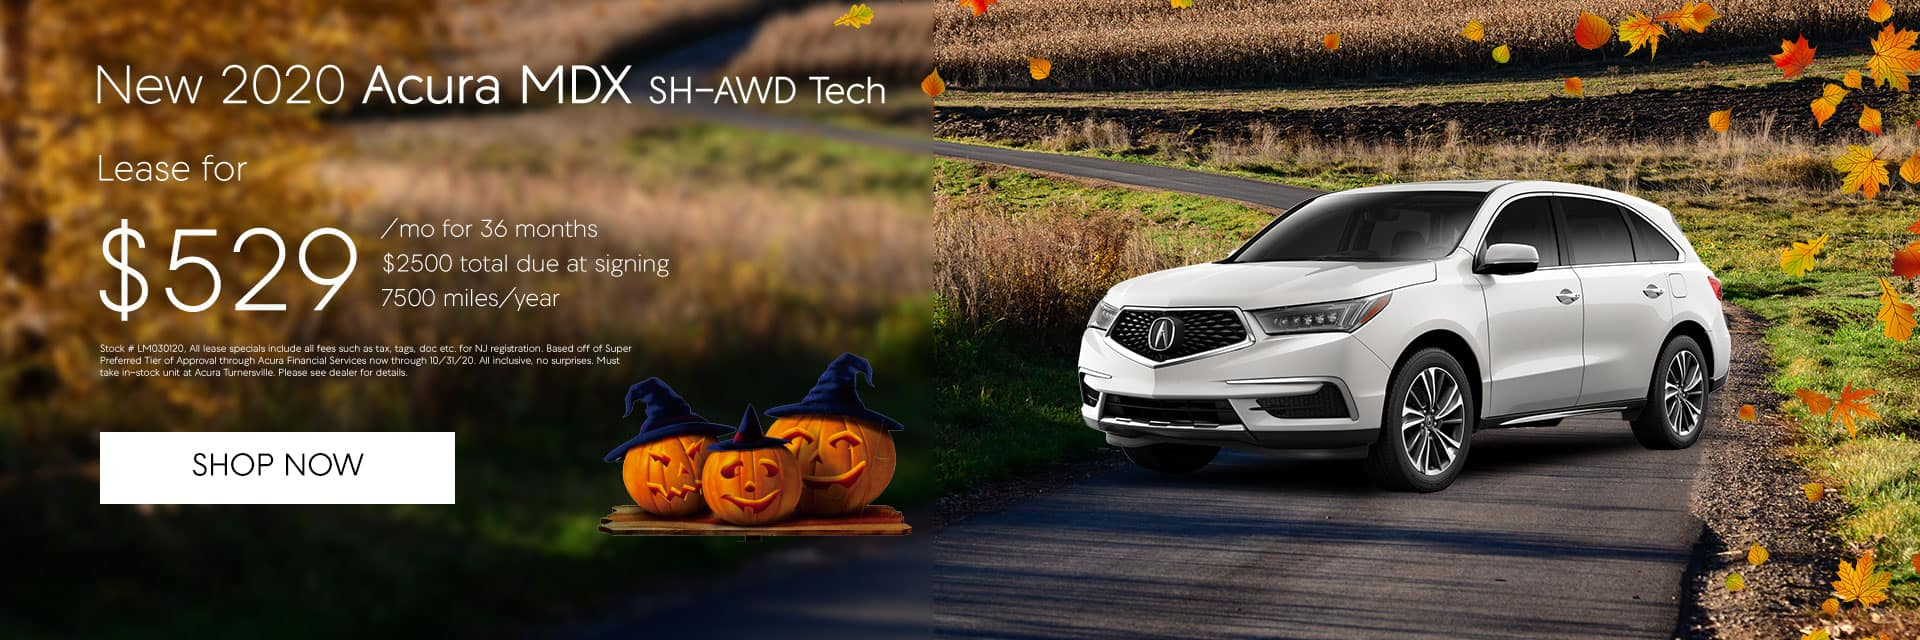 MDX Tech Lease offer at $529/mo